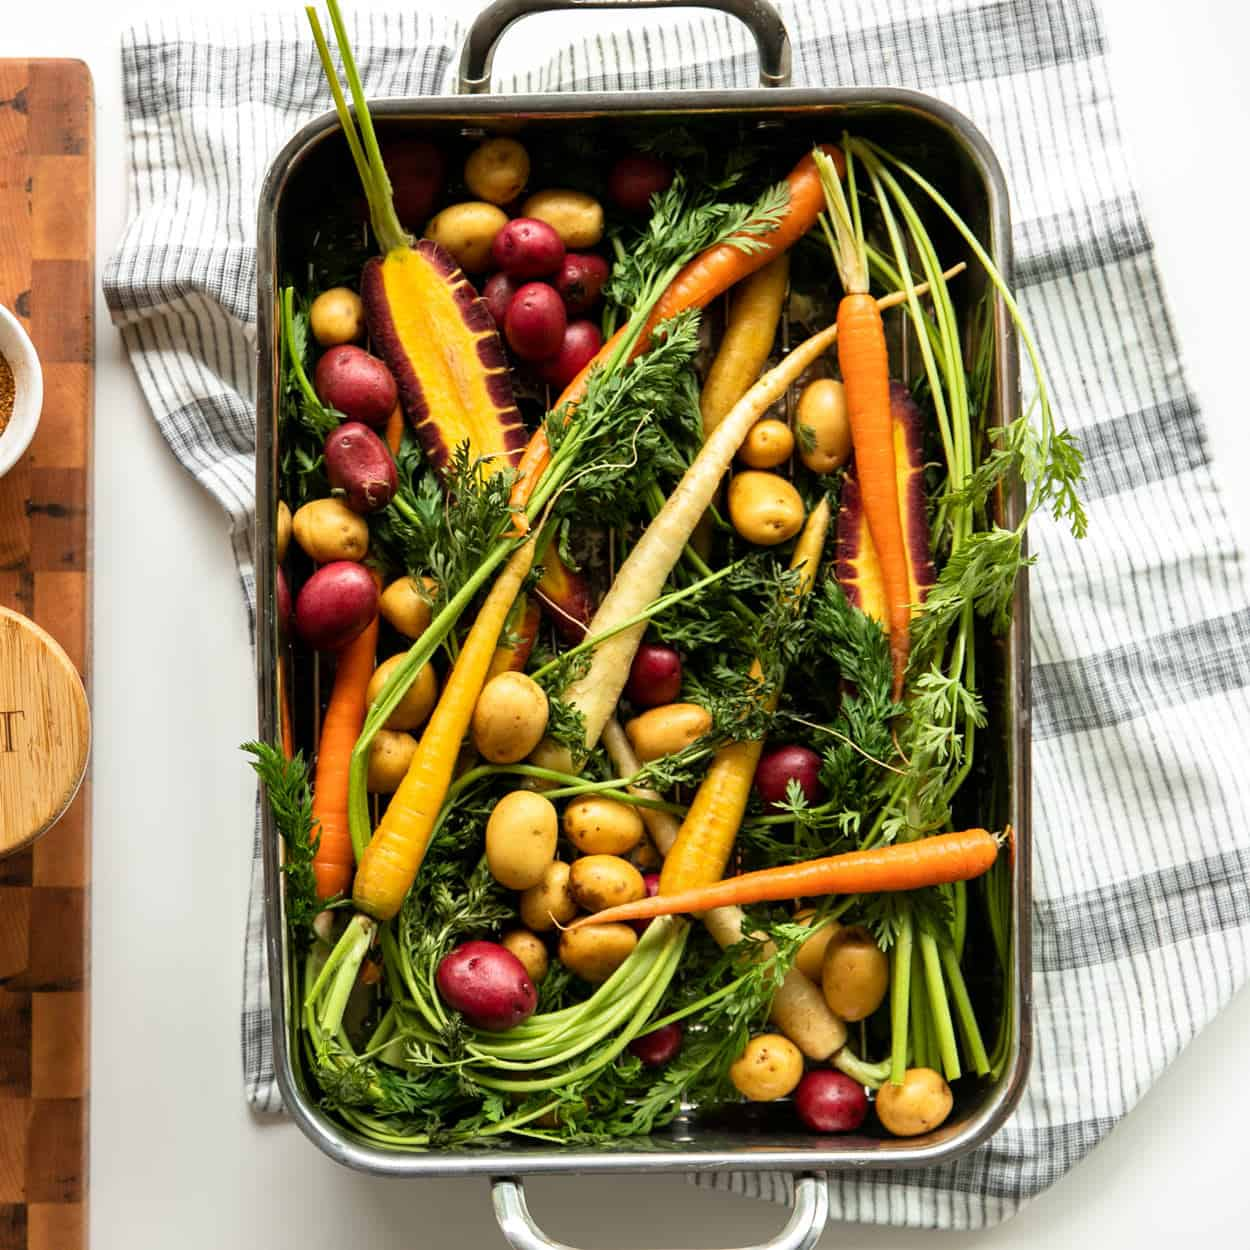 Brown Butter Herb Crispy Skin Salmon and Vegetables: Root Vegetables (rainbow carrots and potatoes) on a bed of herbs in a roasting pan.